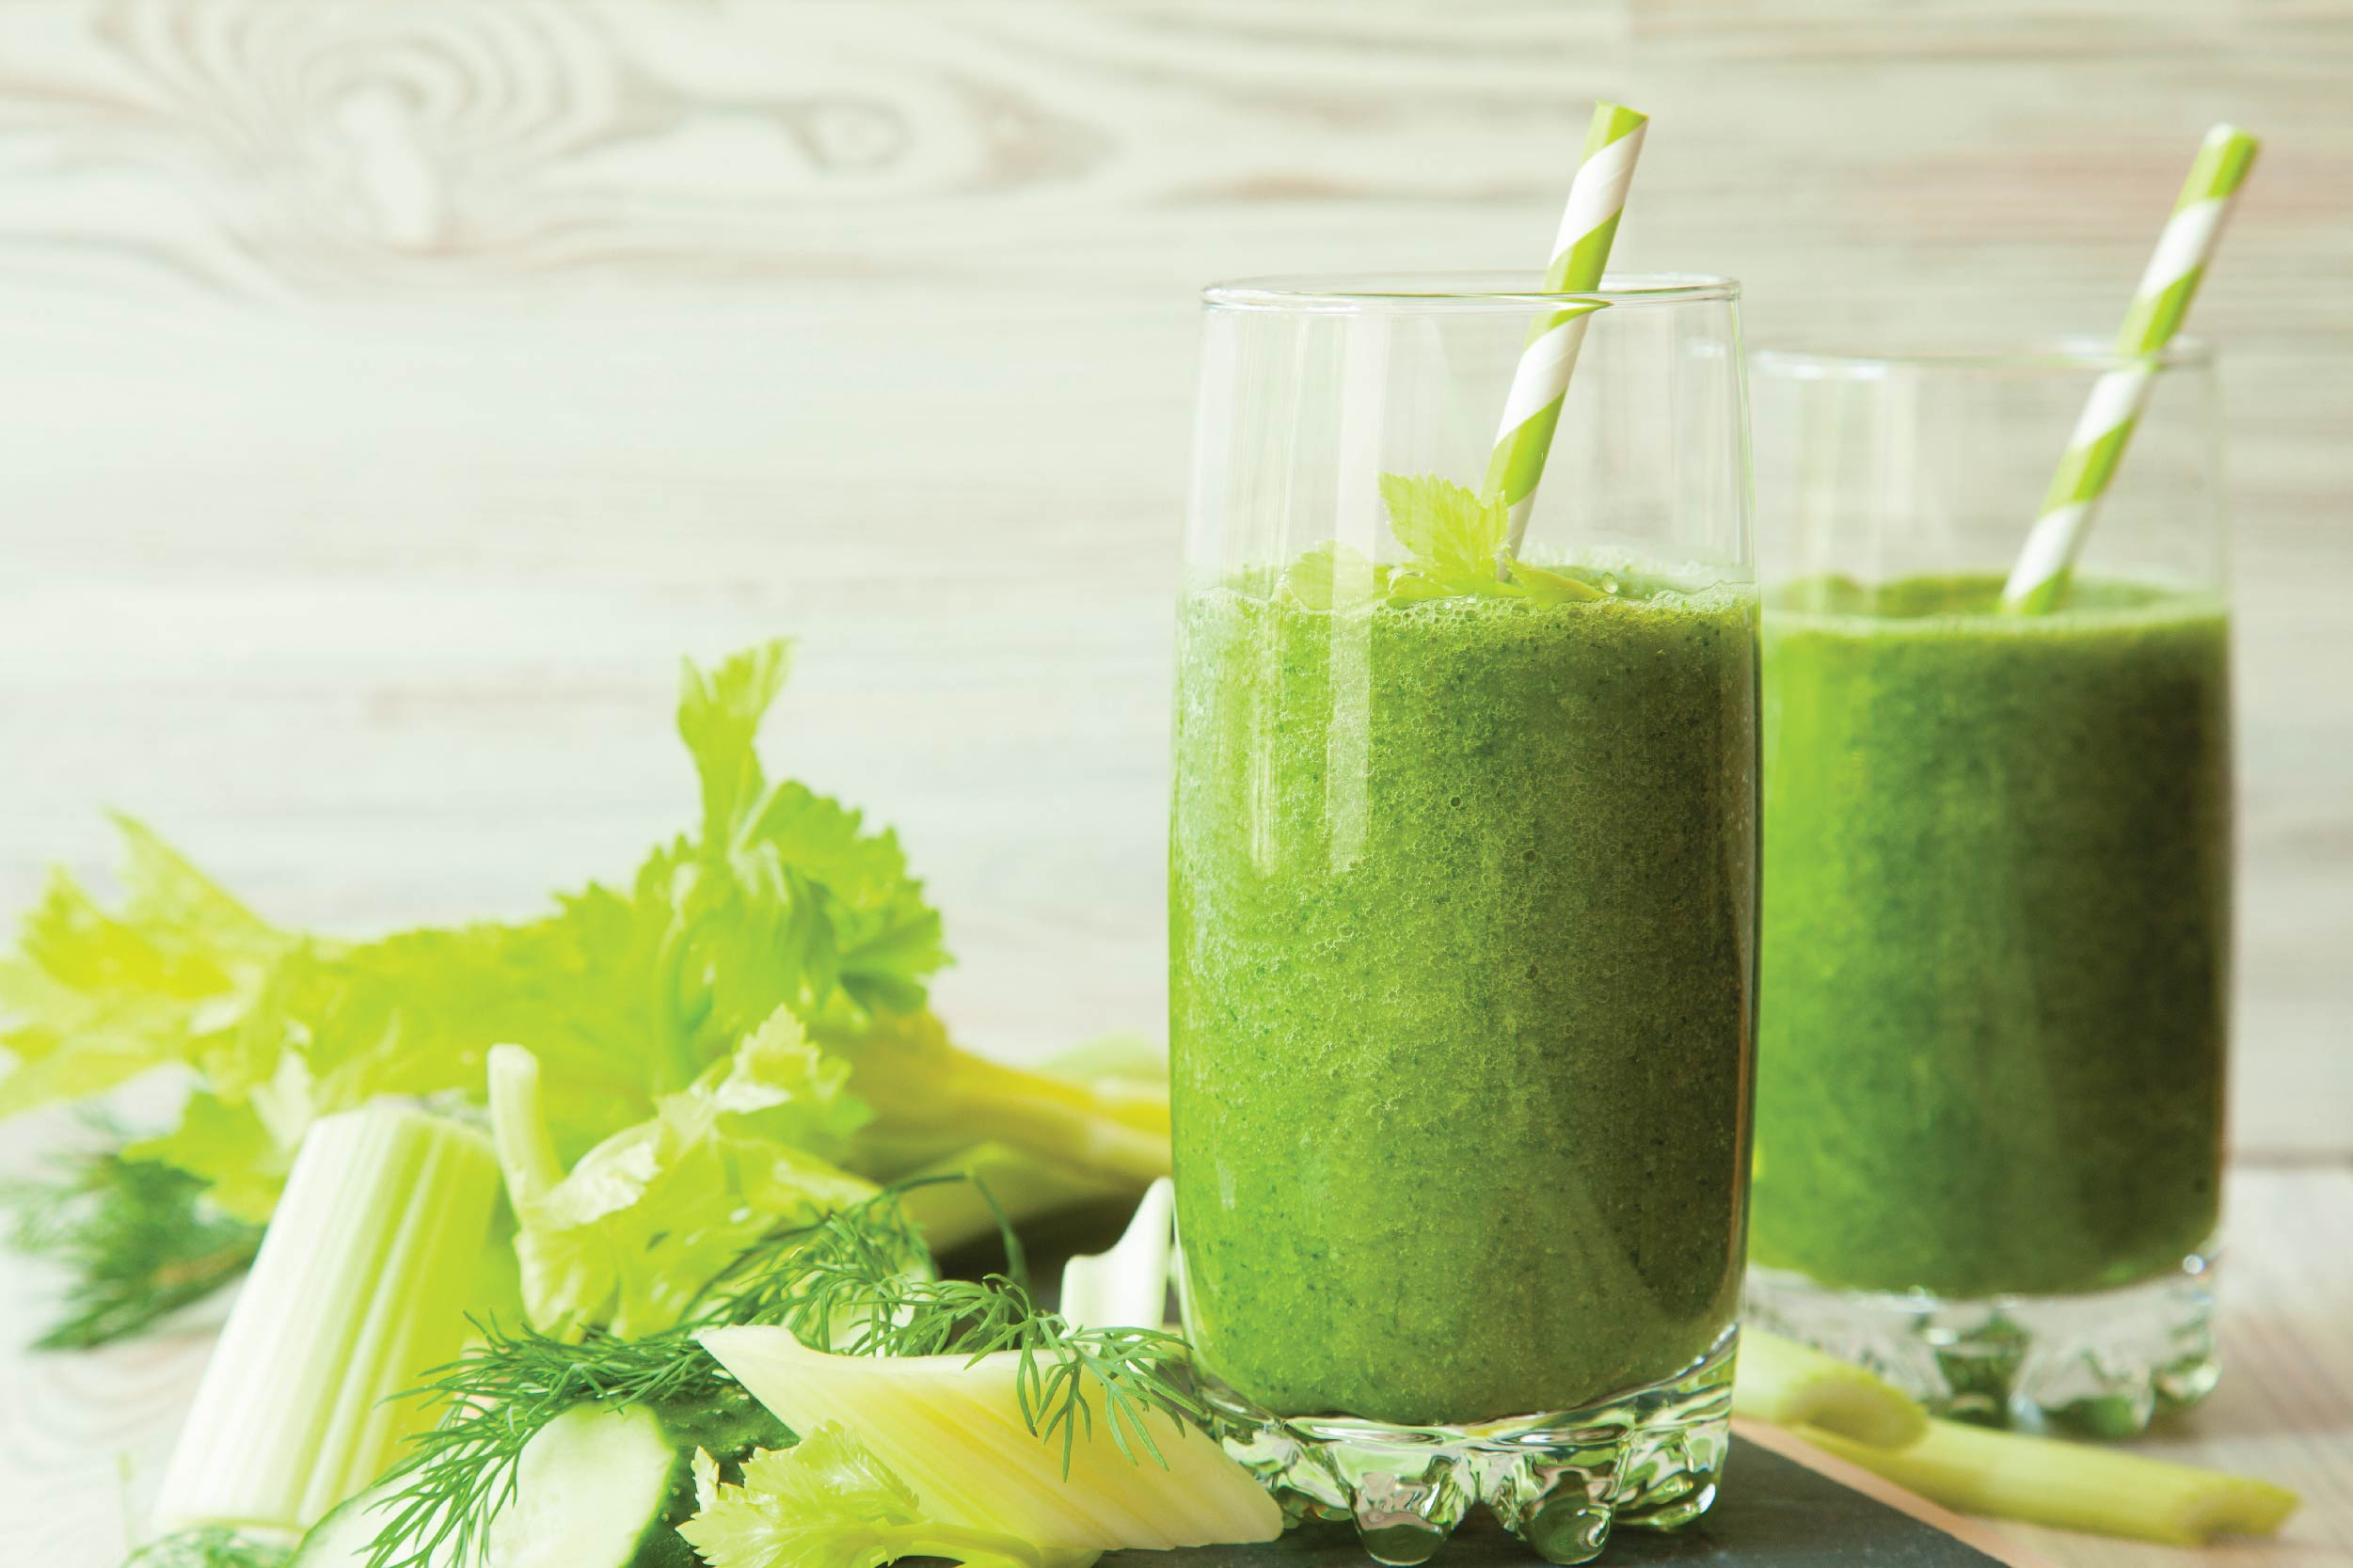 What's Up With Everyone Drinking Celery Juice Lately? - Aaptiv